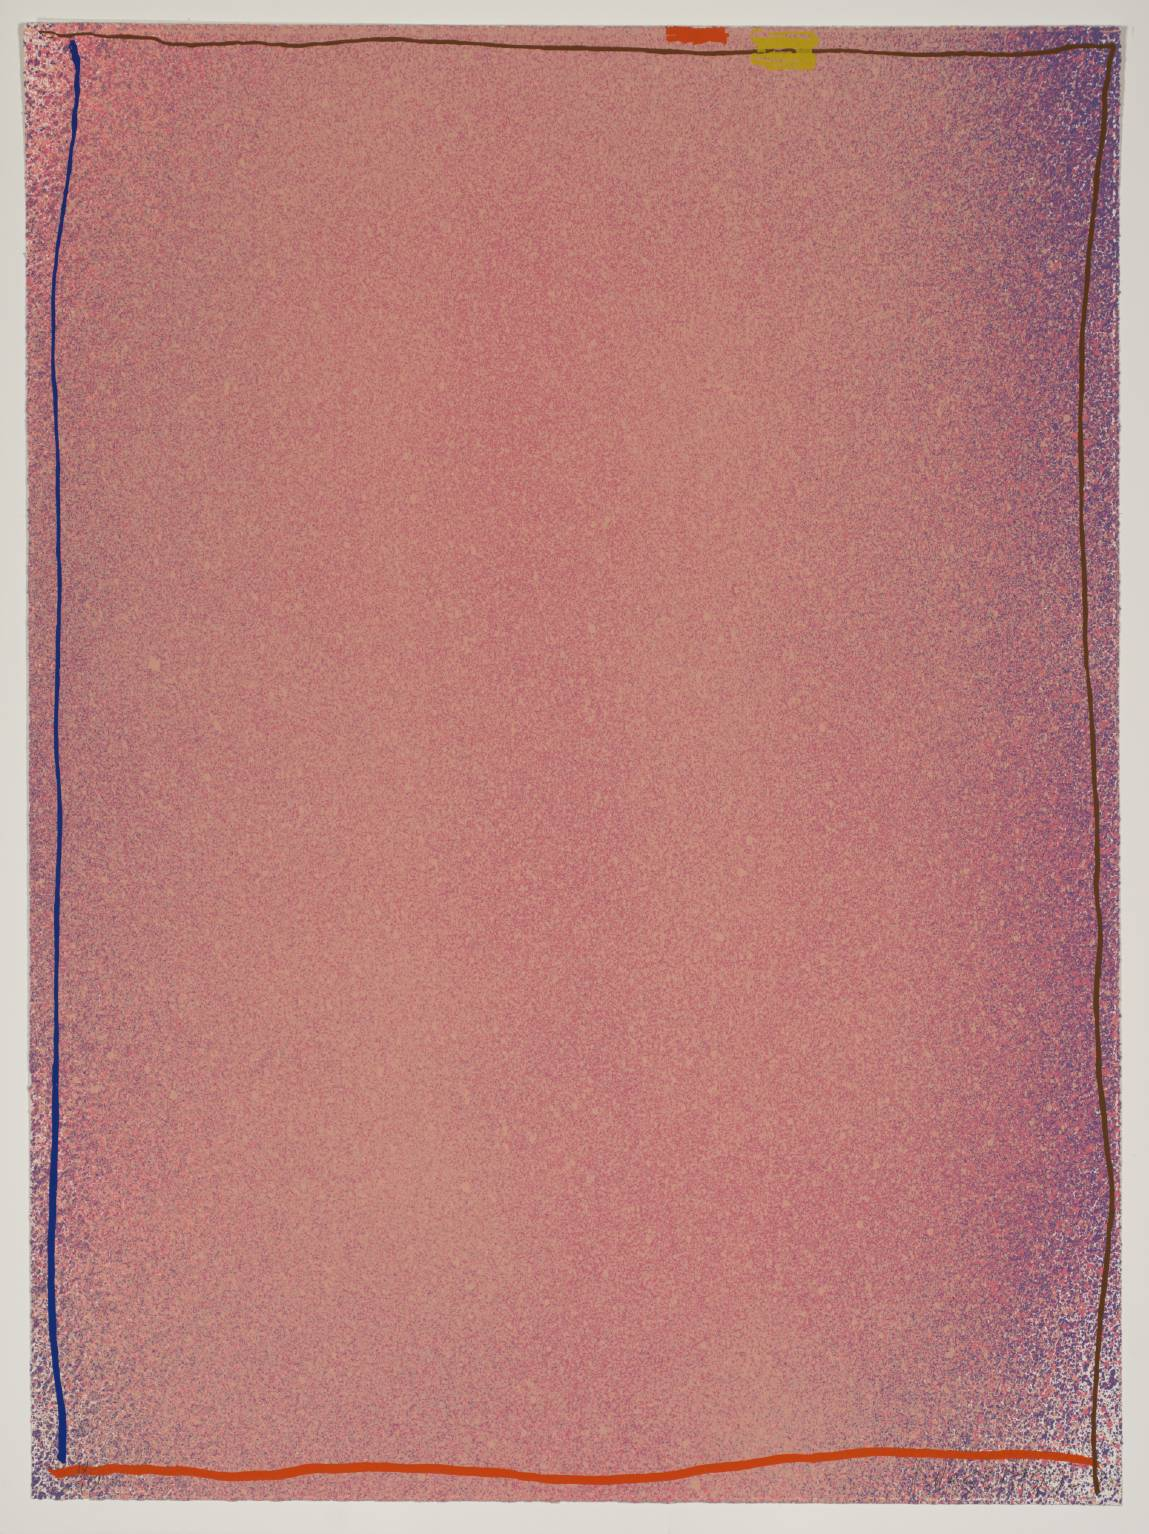 Pink/Blue with Orange, Tan and Yellow, 1970, 88.9 x 66.04 cm